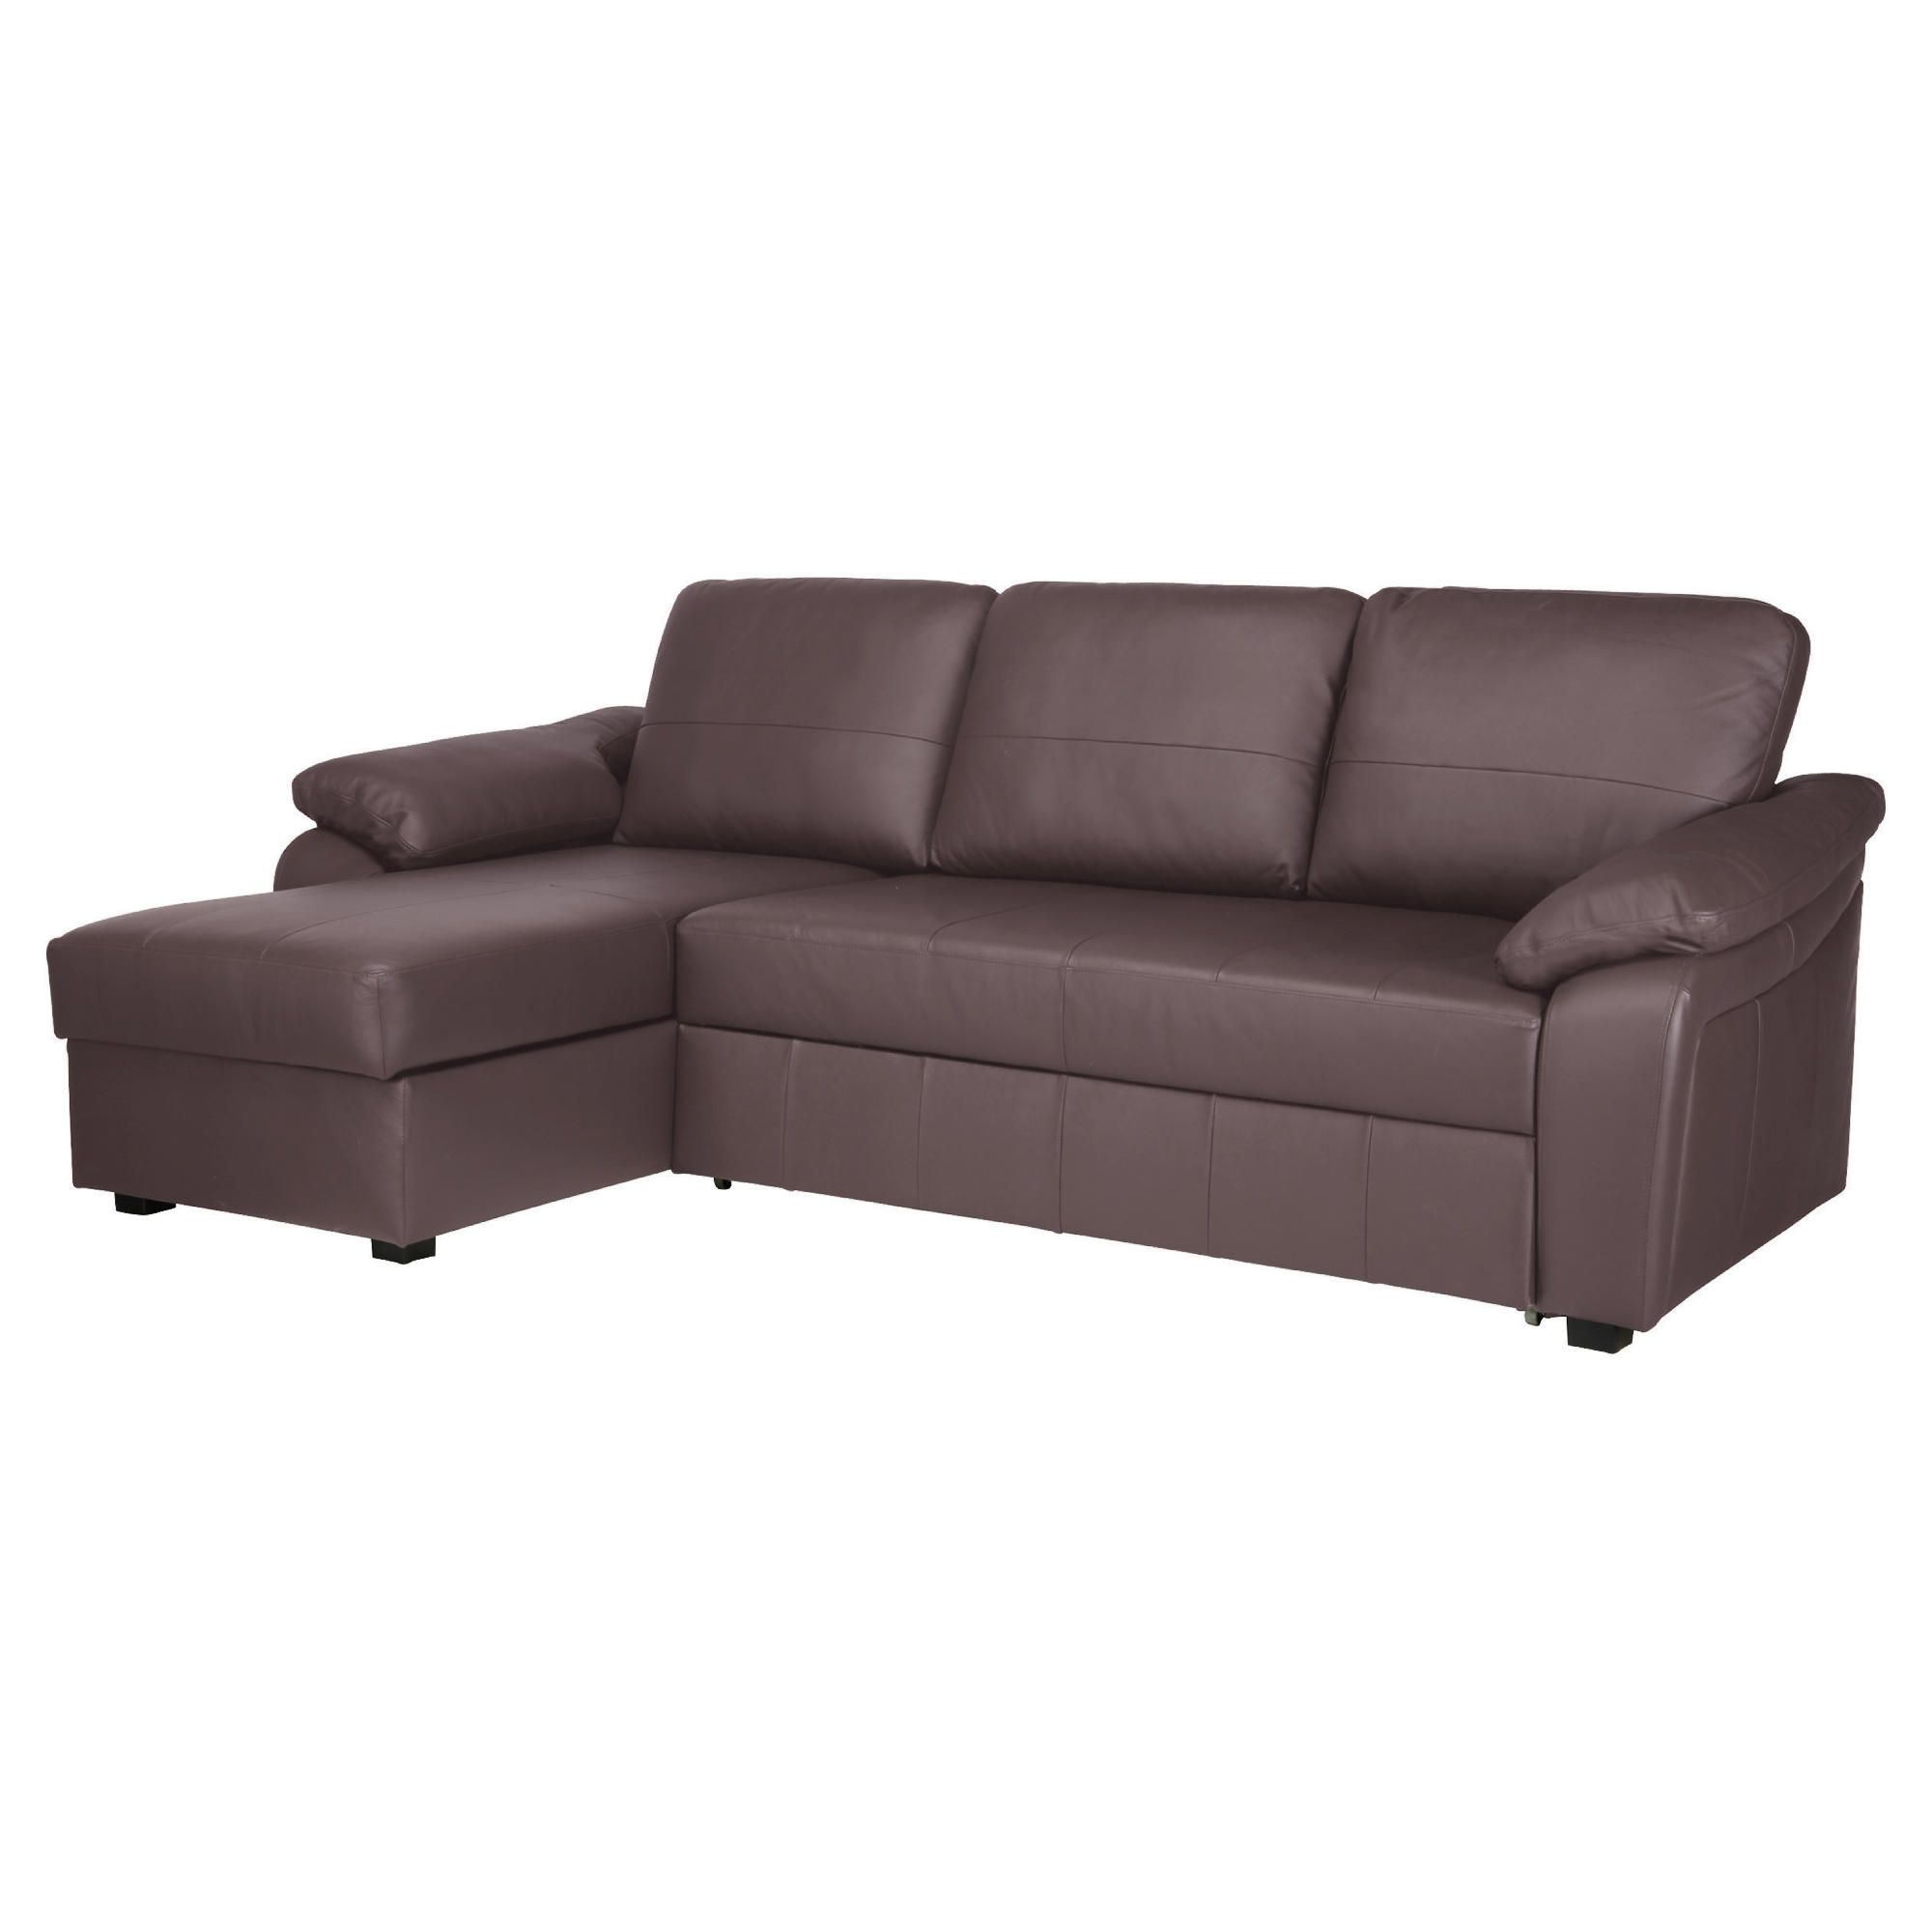 Home and garden furniture ashmore leather corner chaise for Brown chaise sofa bed